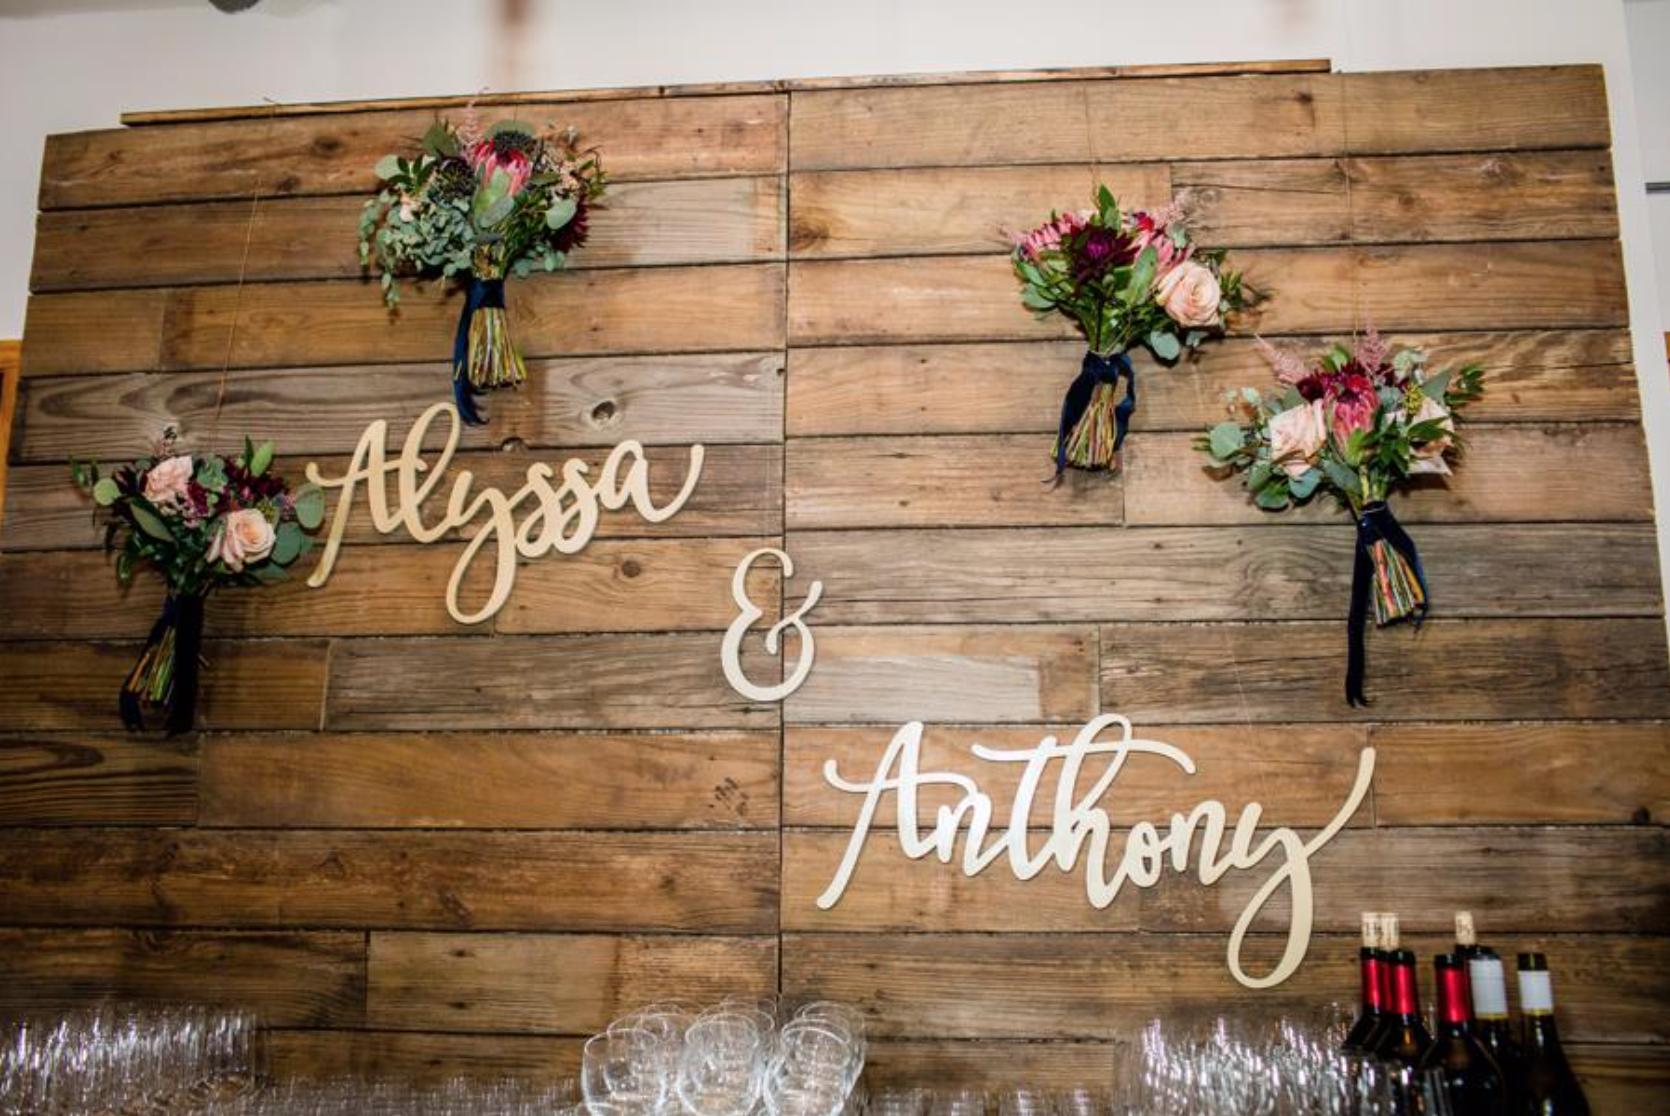 """We """"borrowed"""" the bridesmaids bouquets to add a pop of fall color behind the bar. They were of course given back at the end of the evening."""